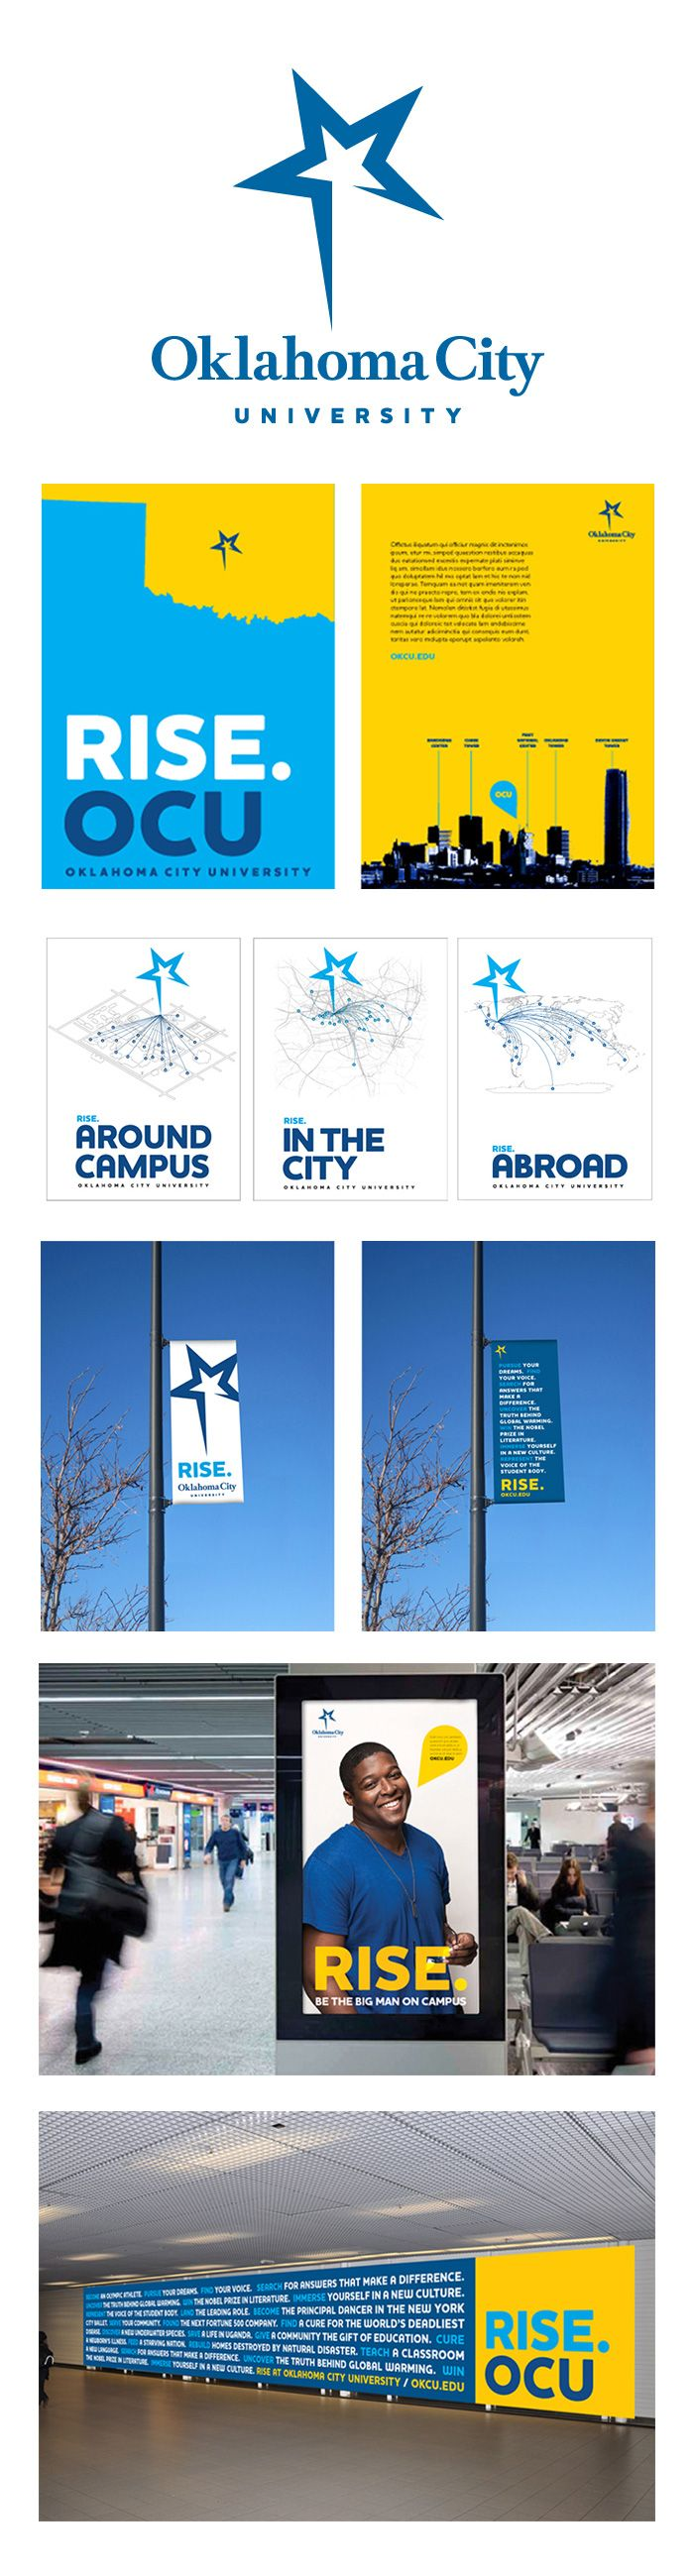 Oklahoma City University branding par Pentagram